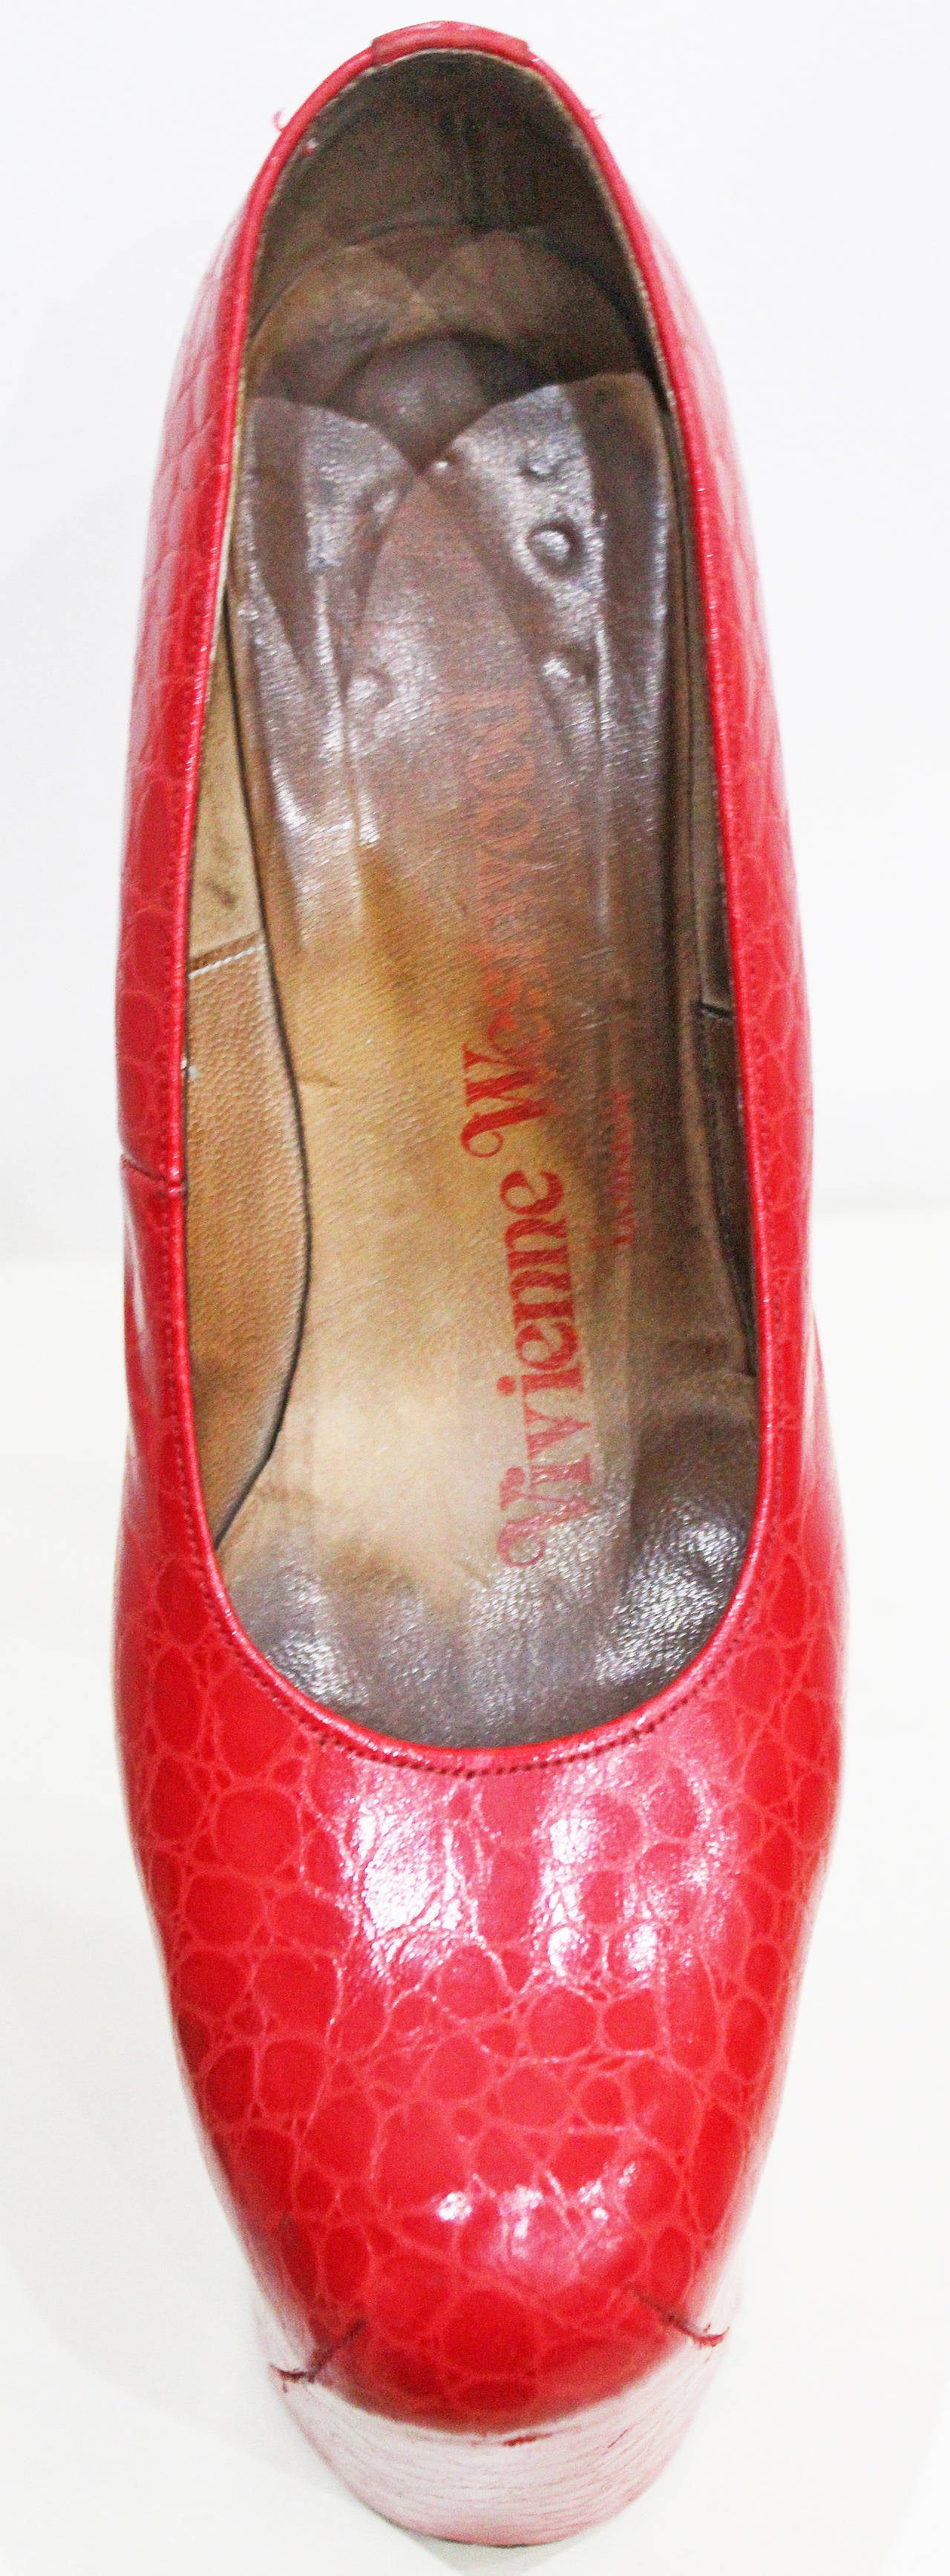 Iconic Vivienne Westwood Super elevated court shoe c. 1993 5